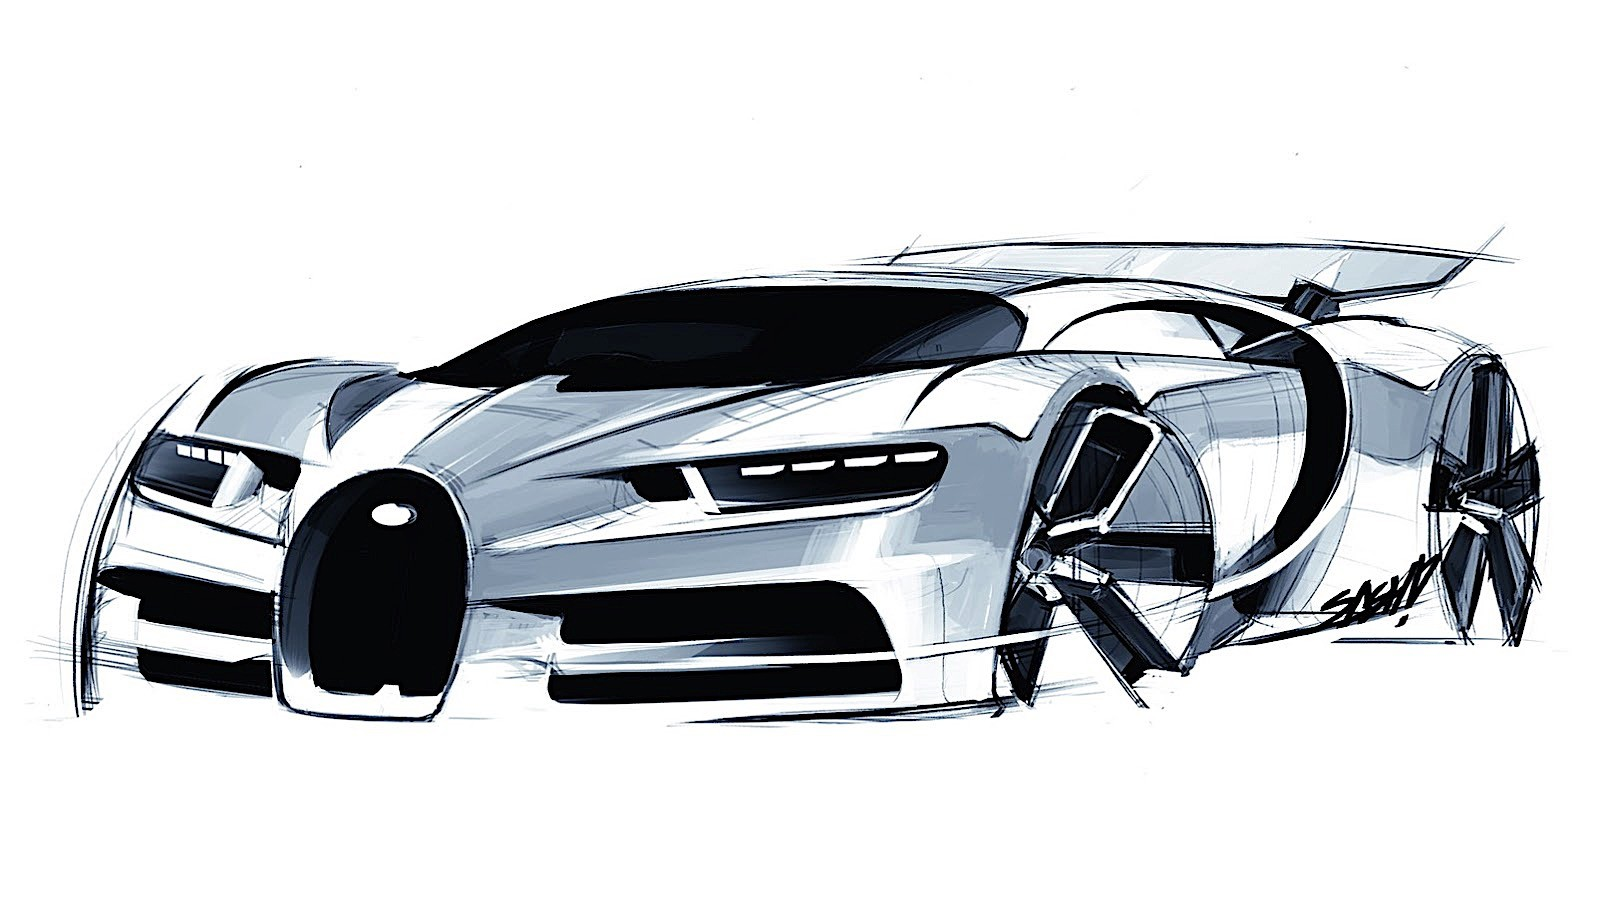 2017 Bugatti Chiron Lets Its Quad Turbocharged W16 Loose 105105 moreover 6 Eco Friendly Diy Homes Built For 20k Or Less moreover The Smart Fortwo Leads Top Of Most Loss Making Cars 67801 moreover 2354703 additionally Wrangler. on cheapest electric cars in usa